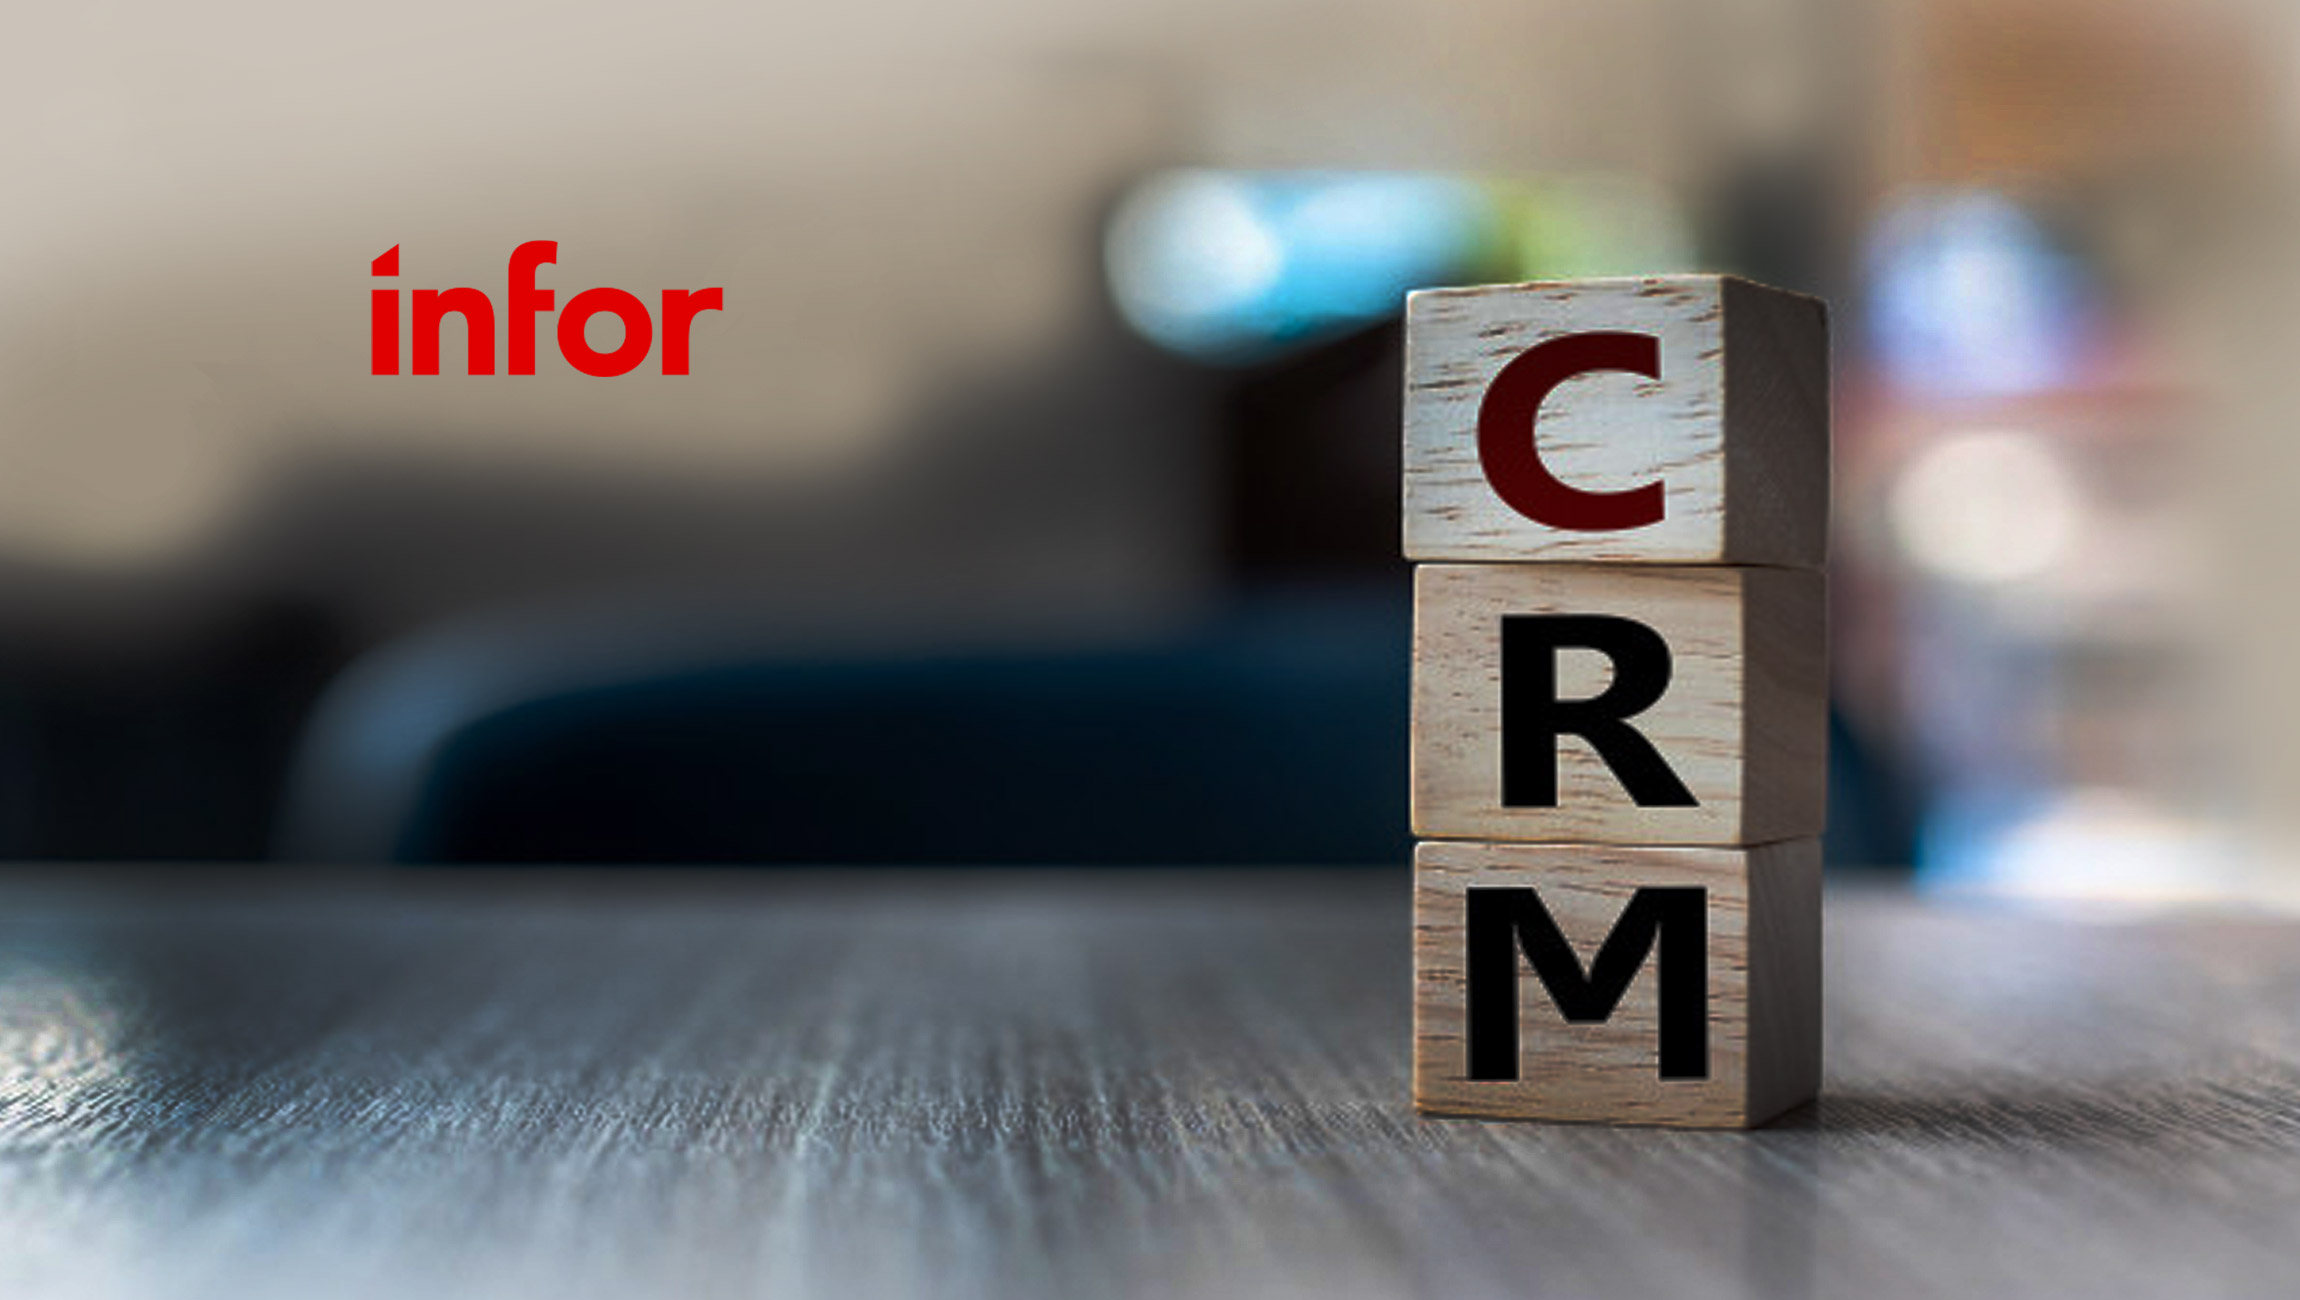 Infor Announces Infor CloudSuite CRM for Emerging Workforce Mobility